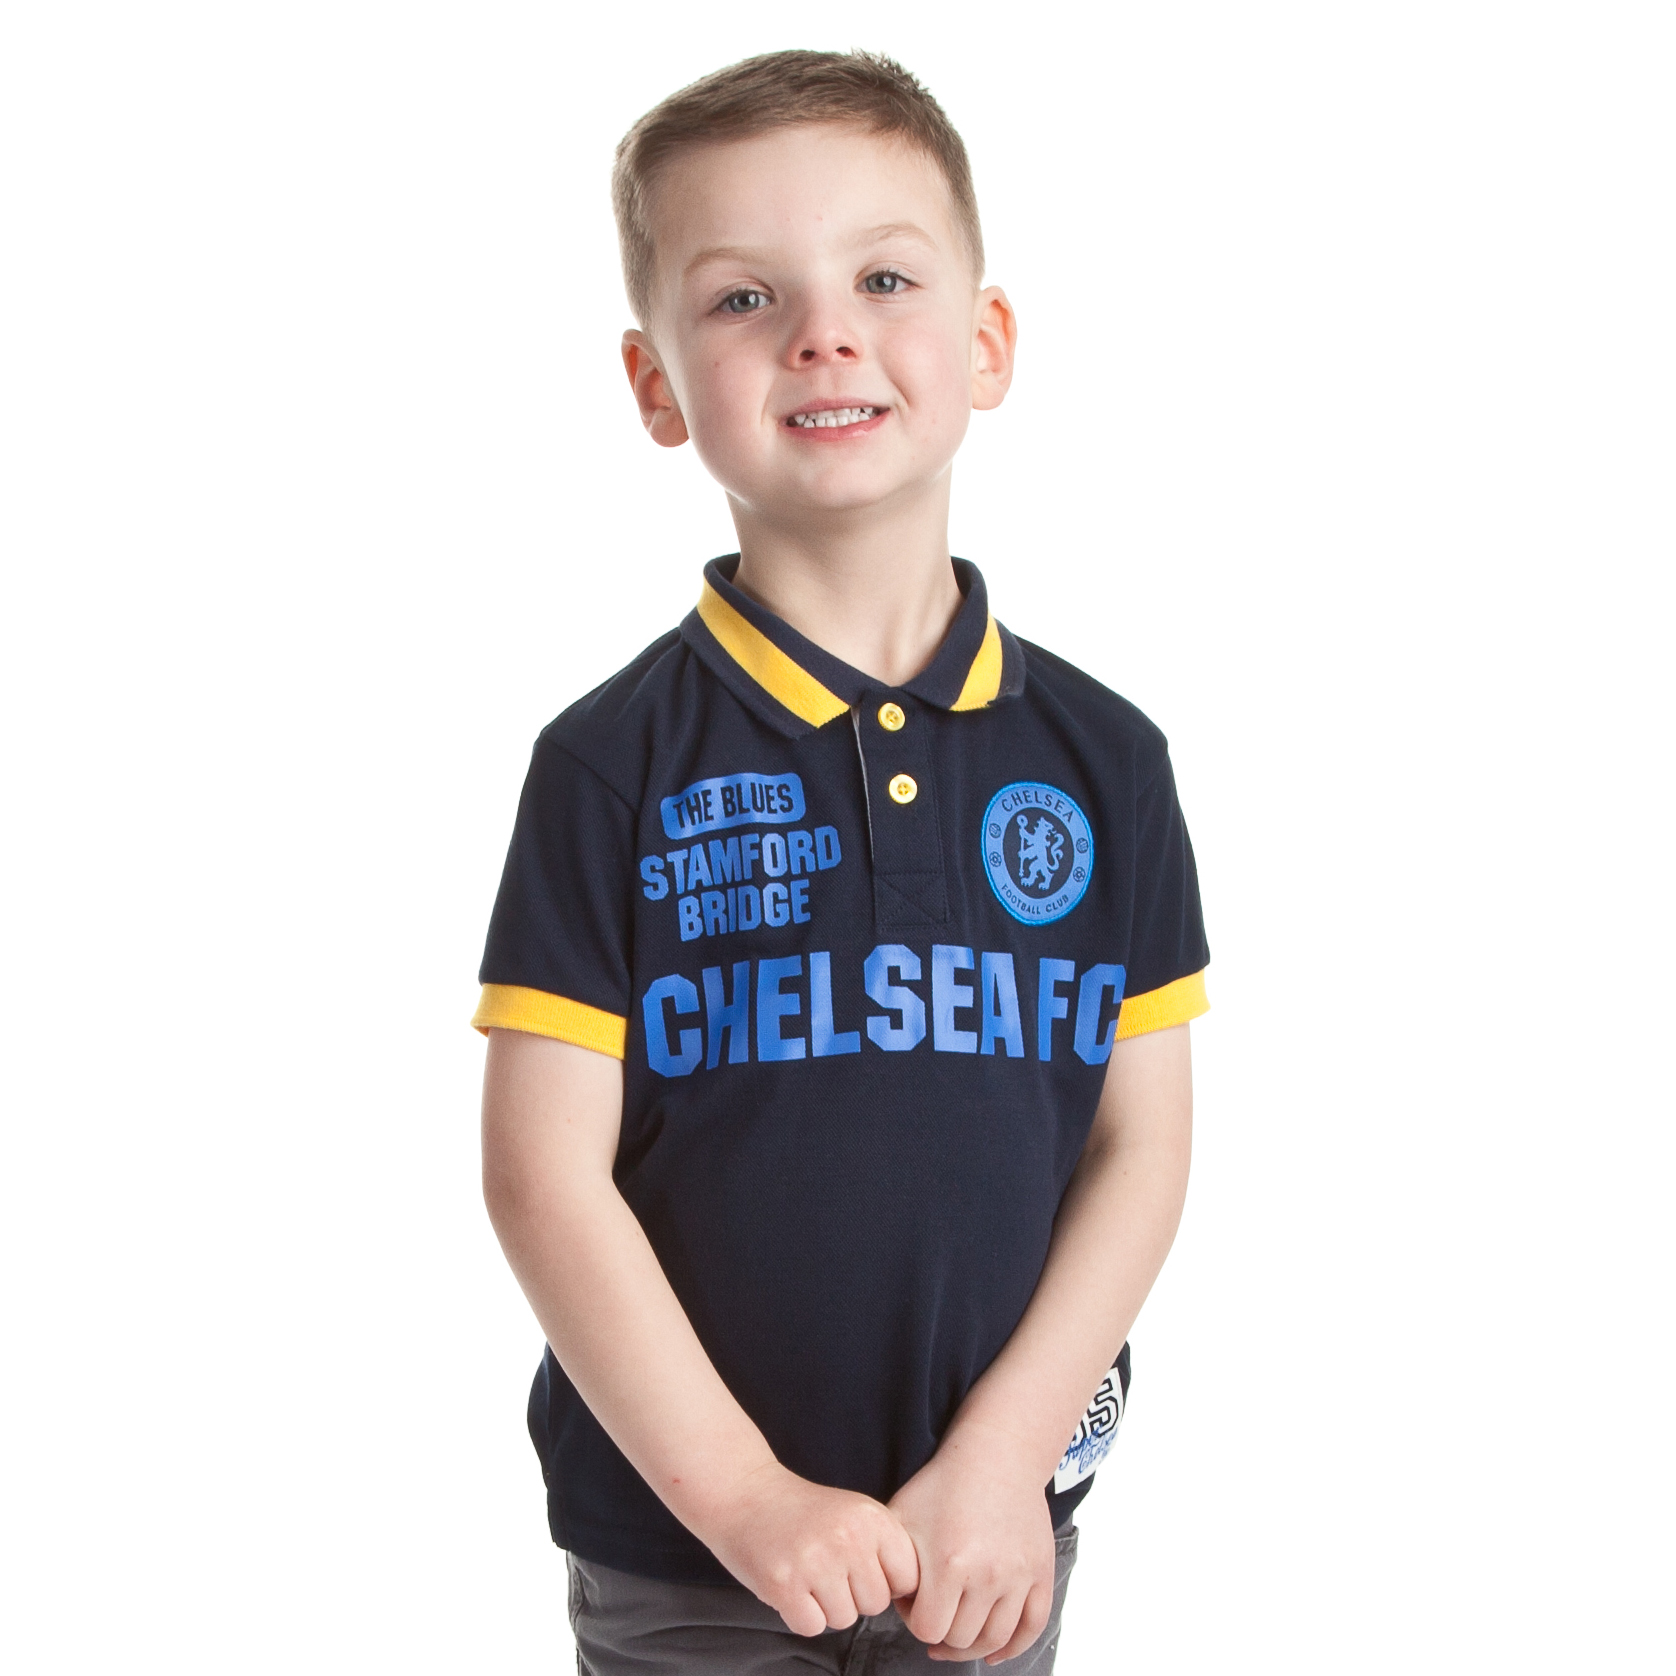 Chelsea Fashion Graphic Polo - Navy - Infant Boys